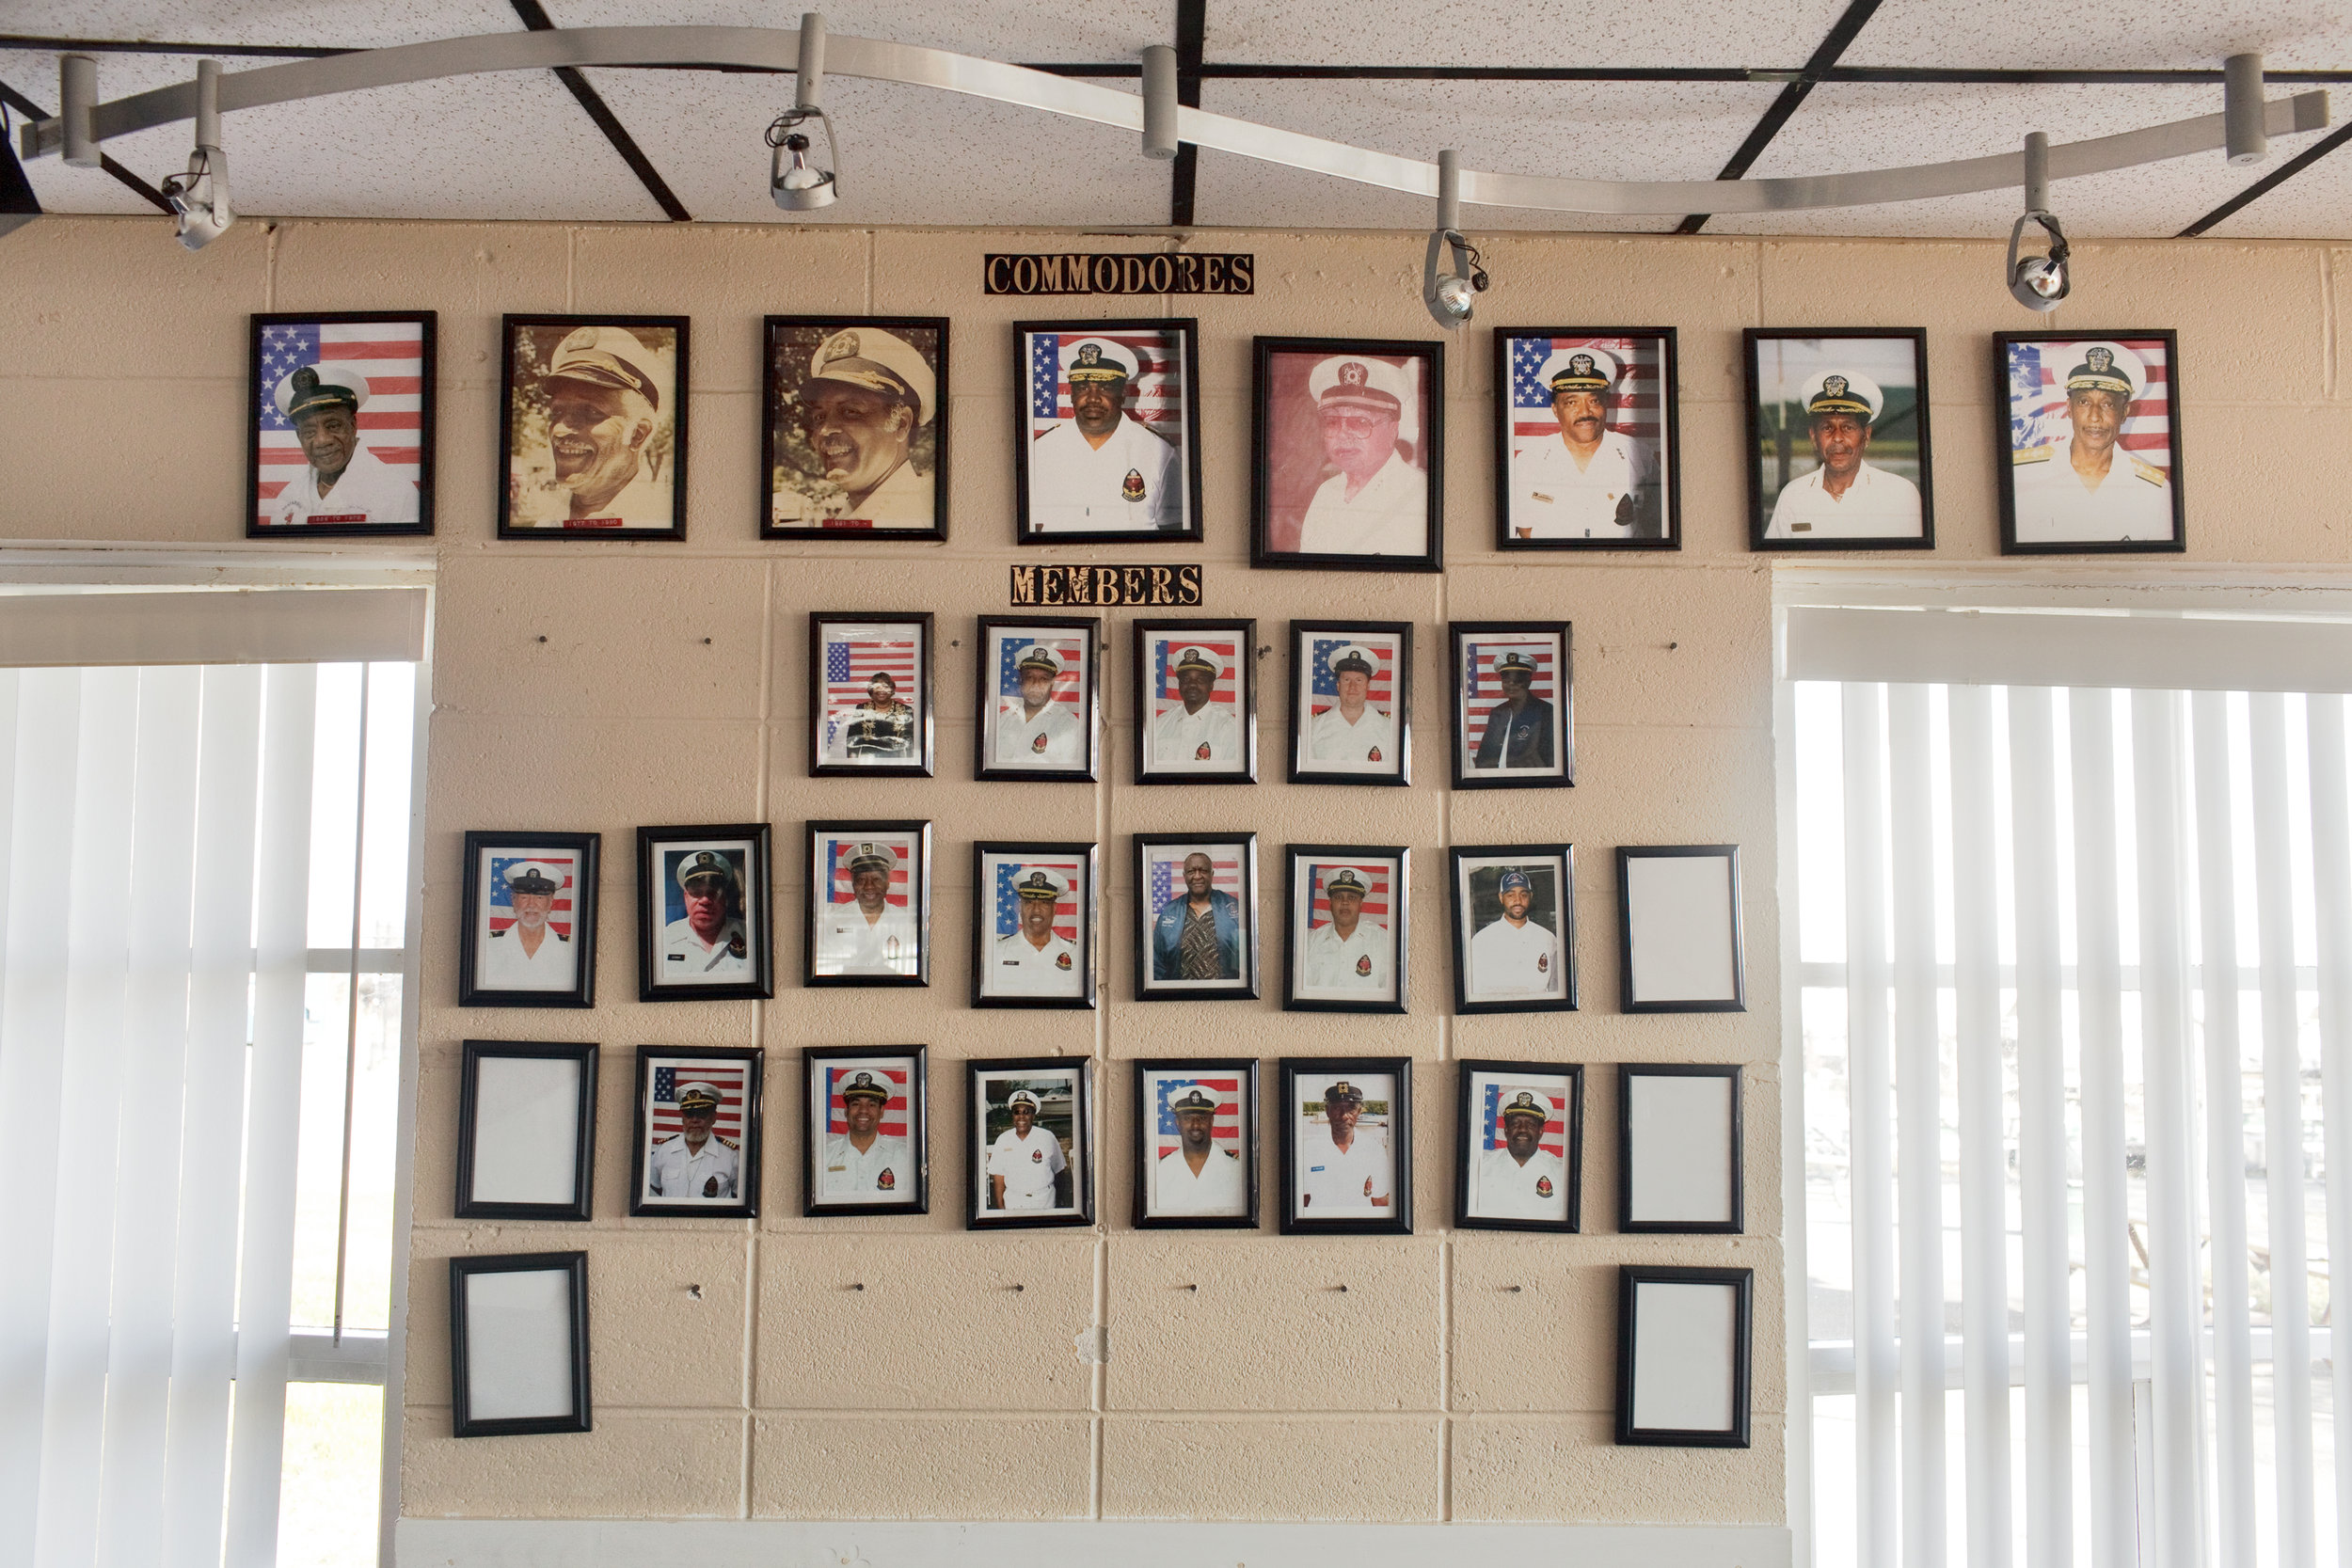 Photographs of past Seafarers' commodores and members hang on the wall inside the clubhouse.